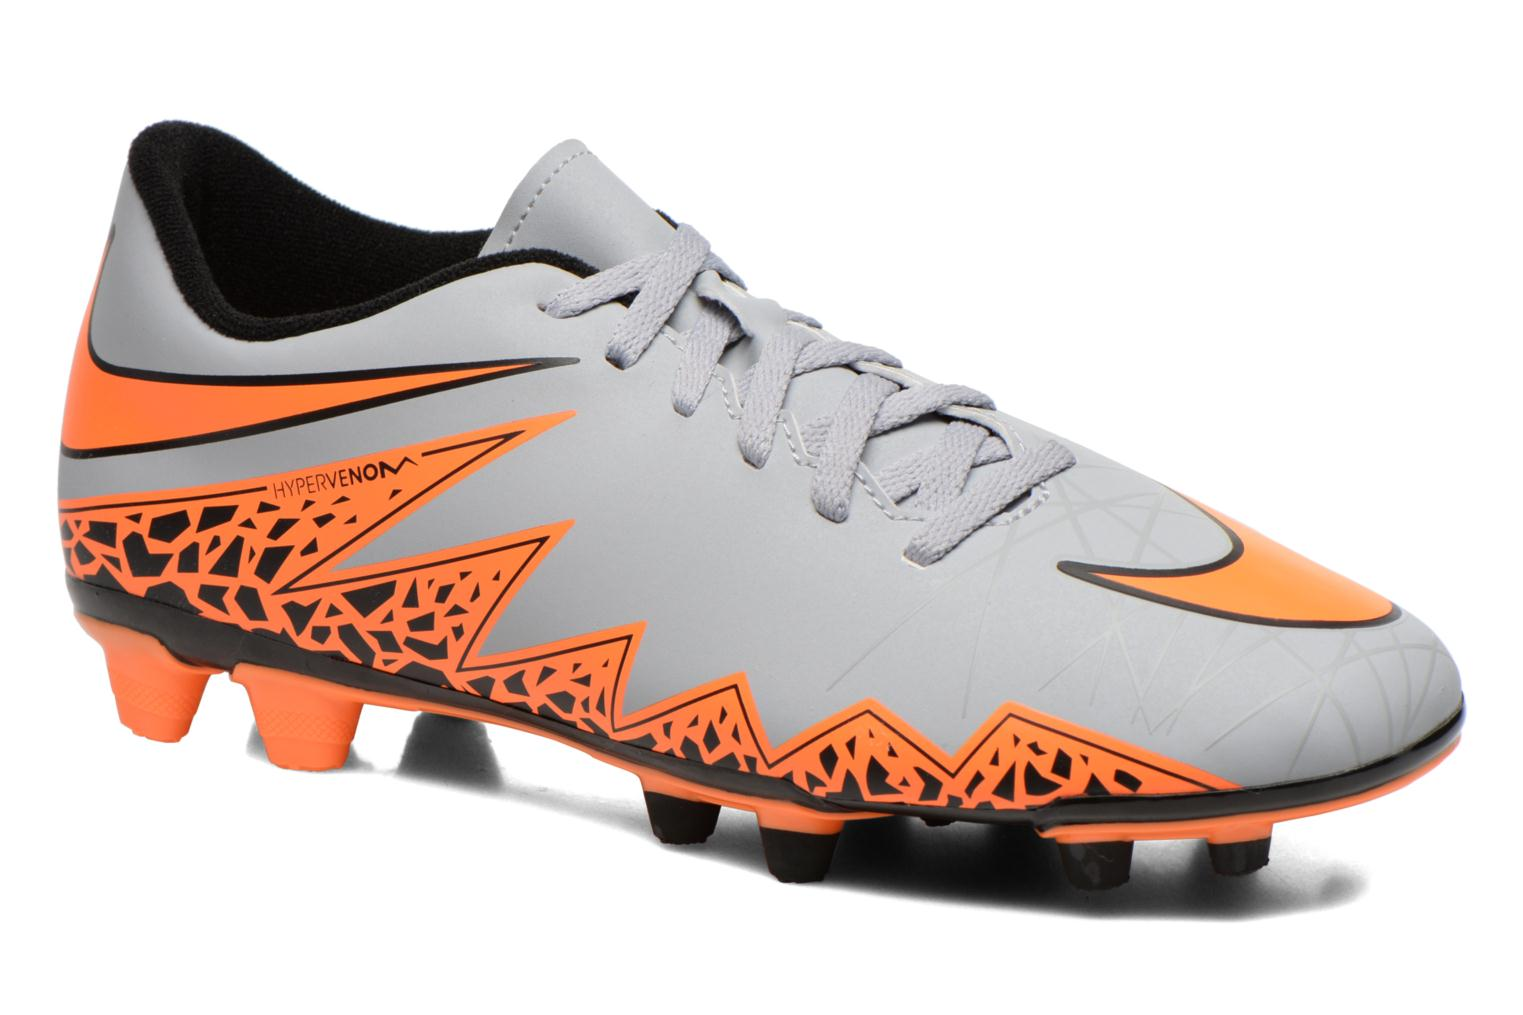 Hypervenom Phade II Fg Wolf Grey/Total Orange-Blk-Blk